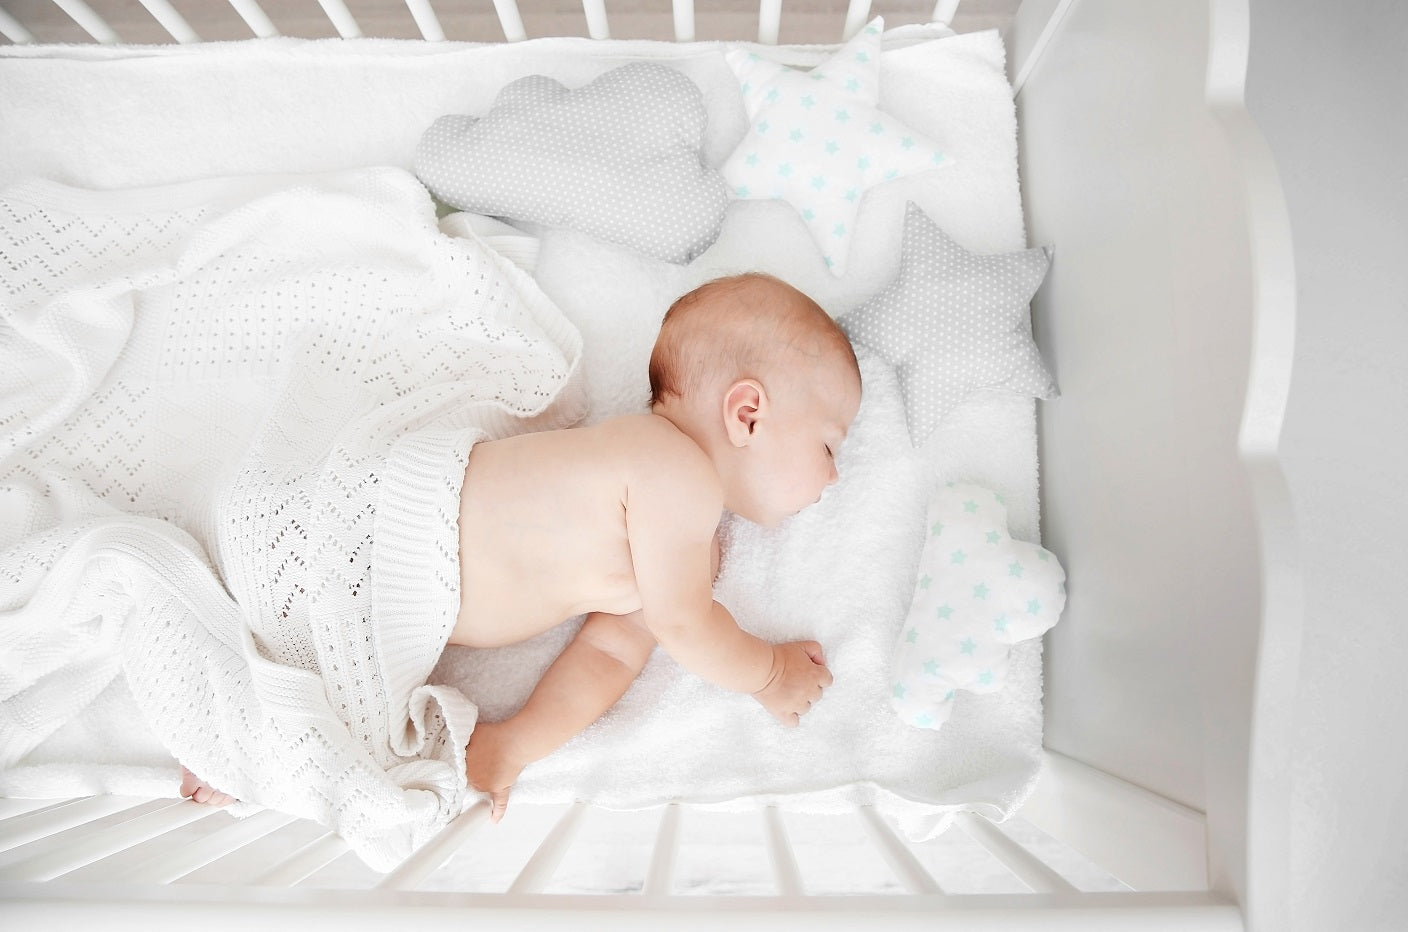 baby sleeps on crib mattress